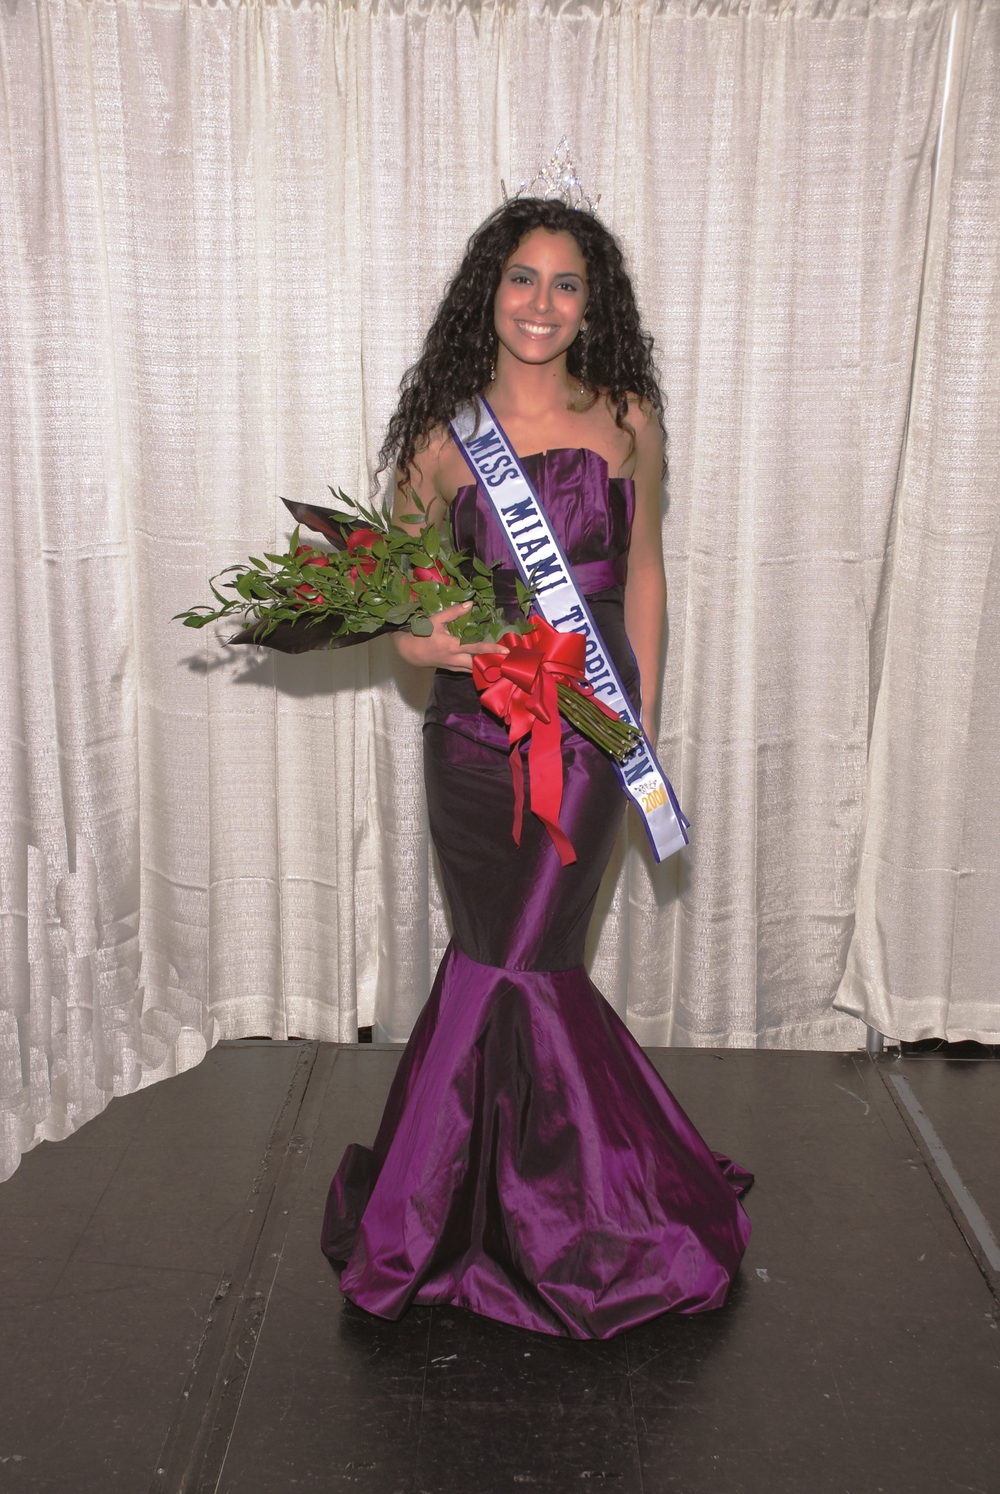 Melissa Ramirez Miss Miami Tropic Teen 2008